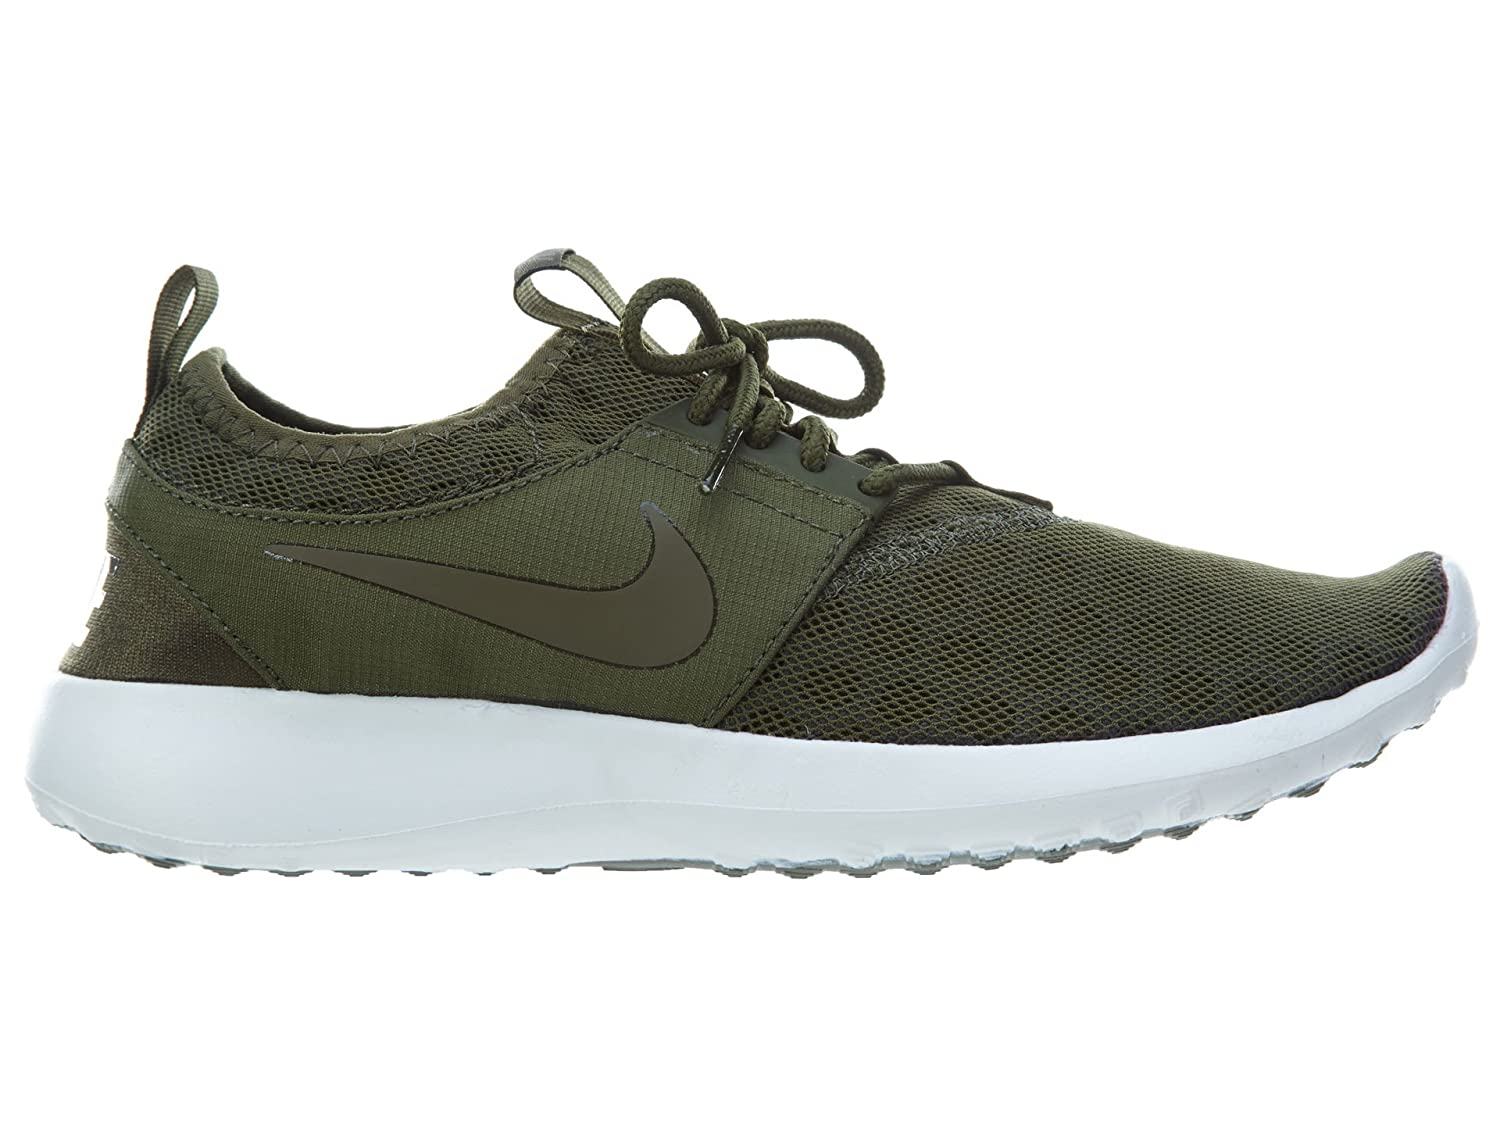 NIKE Women's Juvenate Running Olive/Medium Shoe B00VKY4HP4 9.5 B(M) US|Faded Olive/Medium Running Olive/Sail ced949